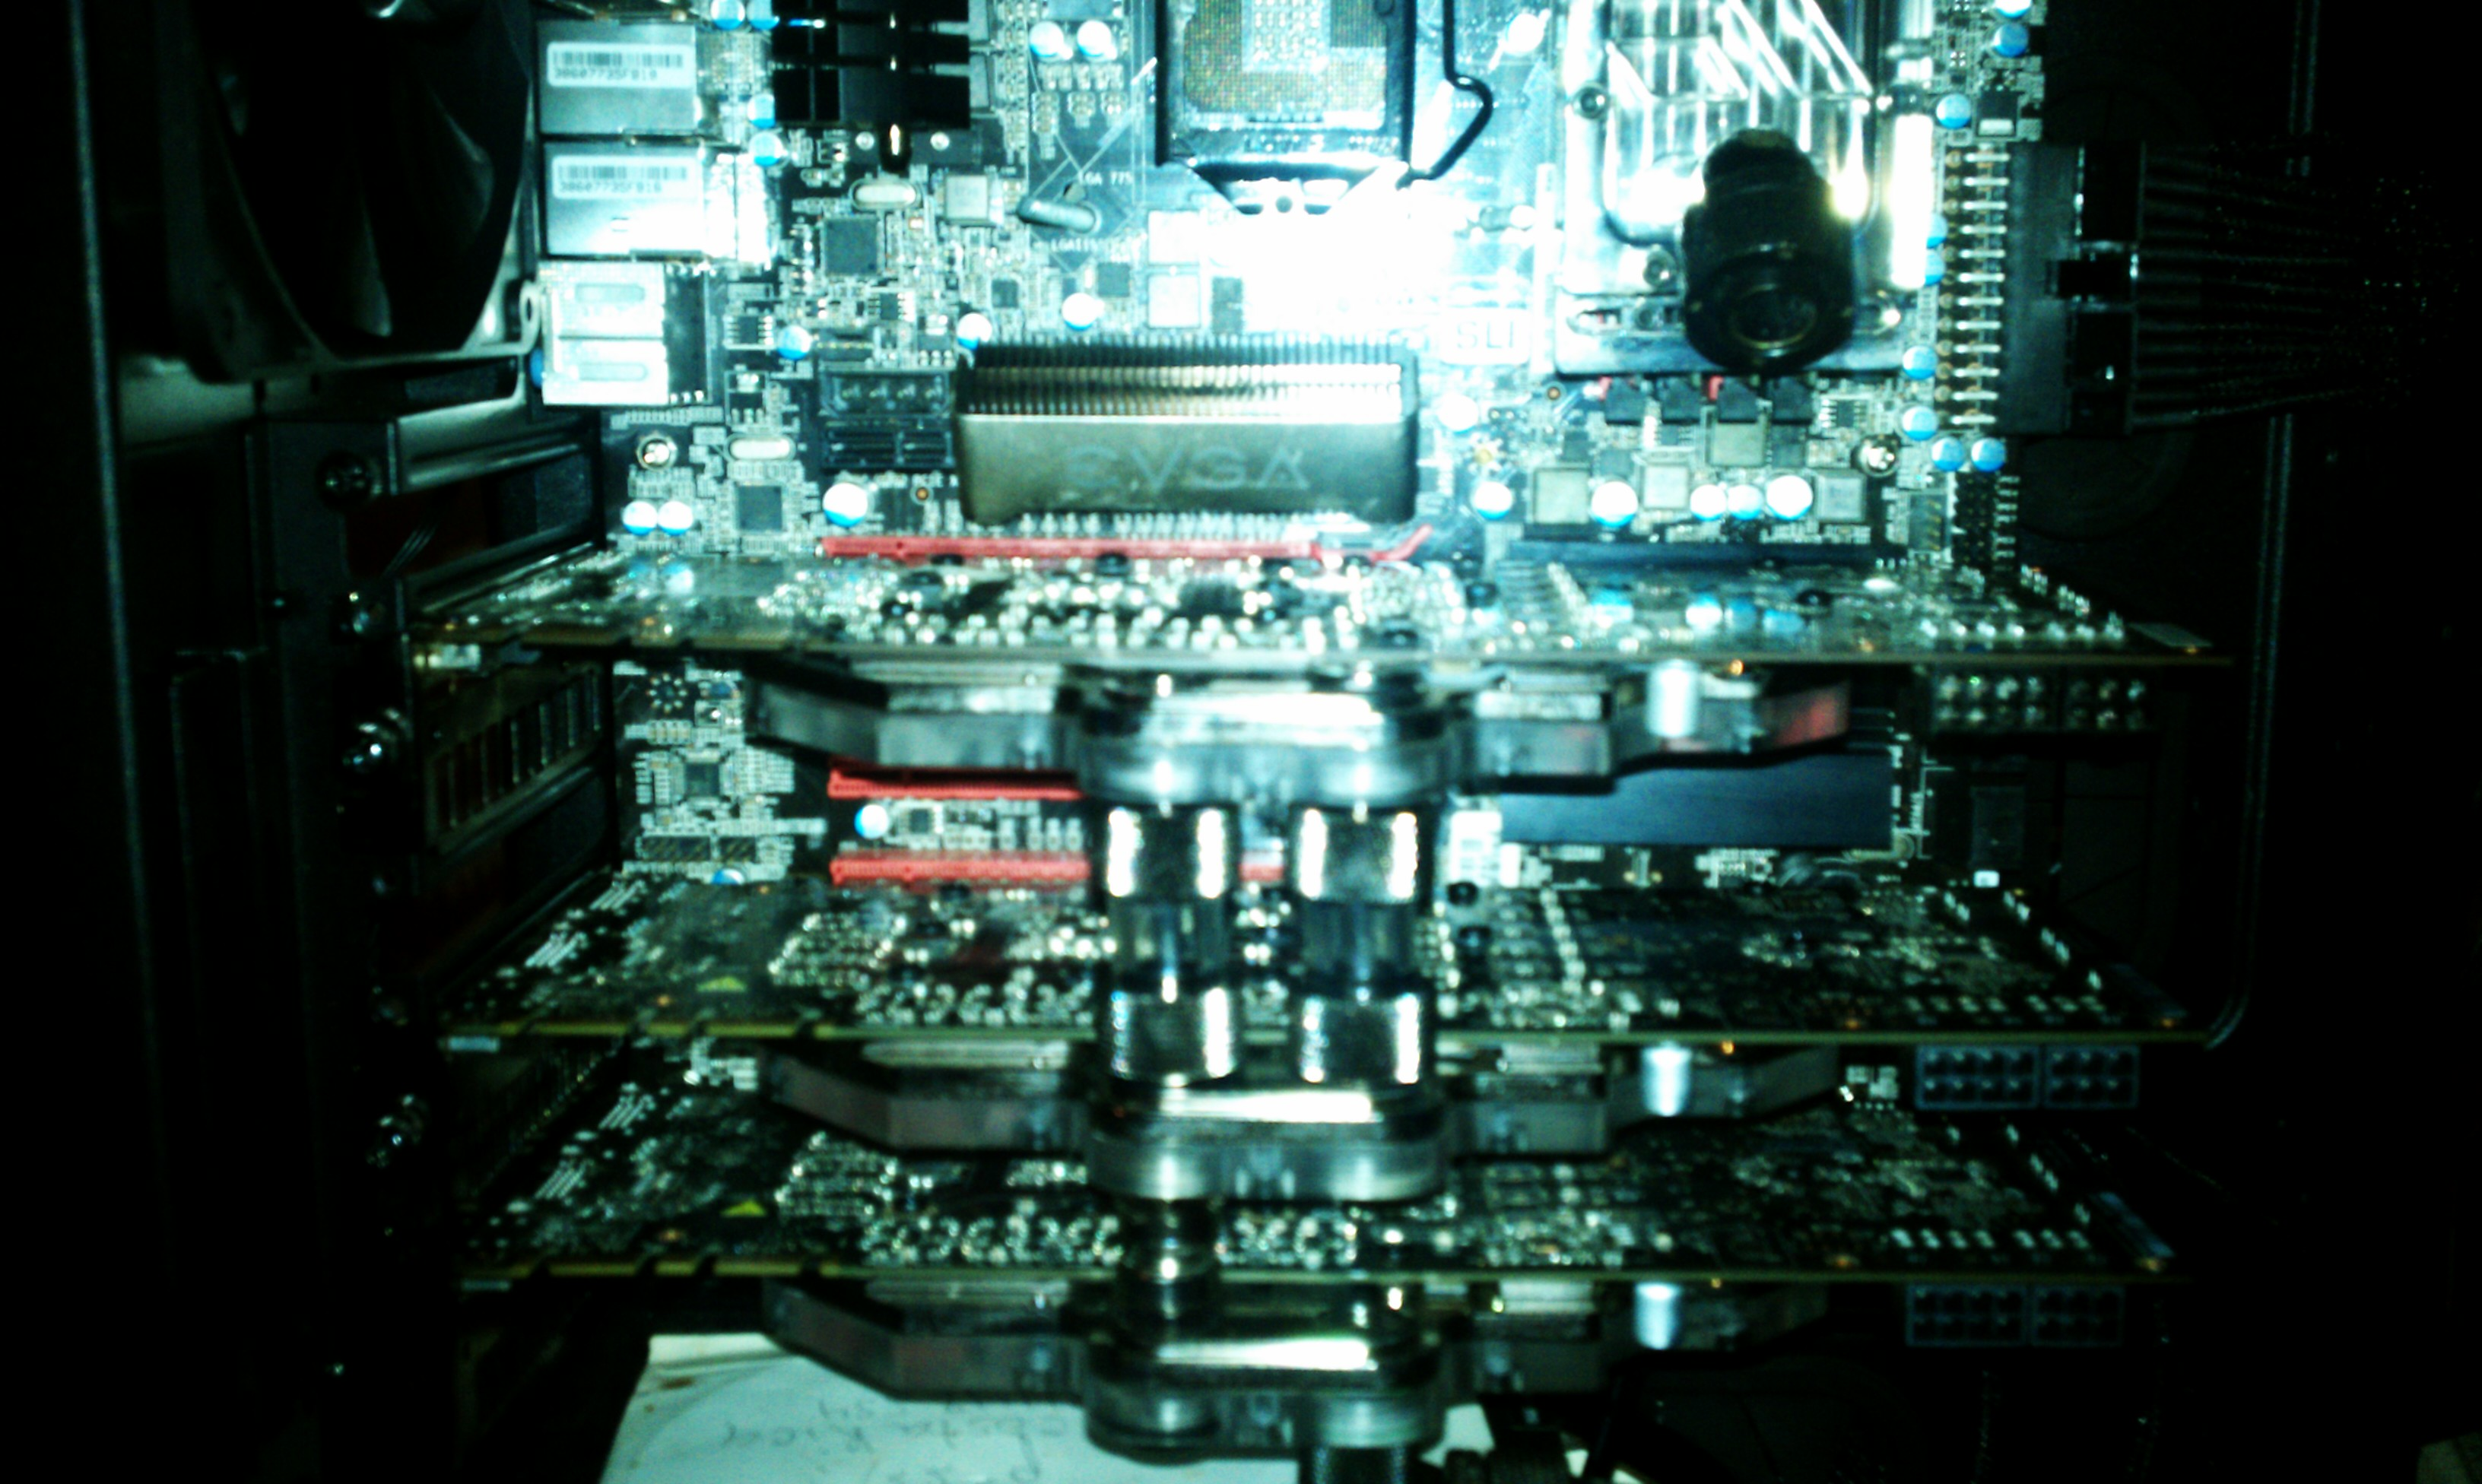 just did few small mods an put in my last evga gtx 580 3gb gpu with fittings,